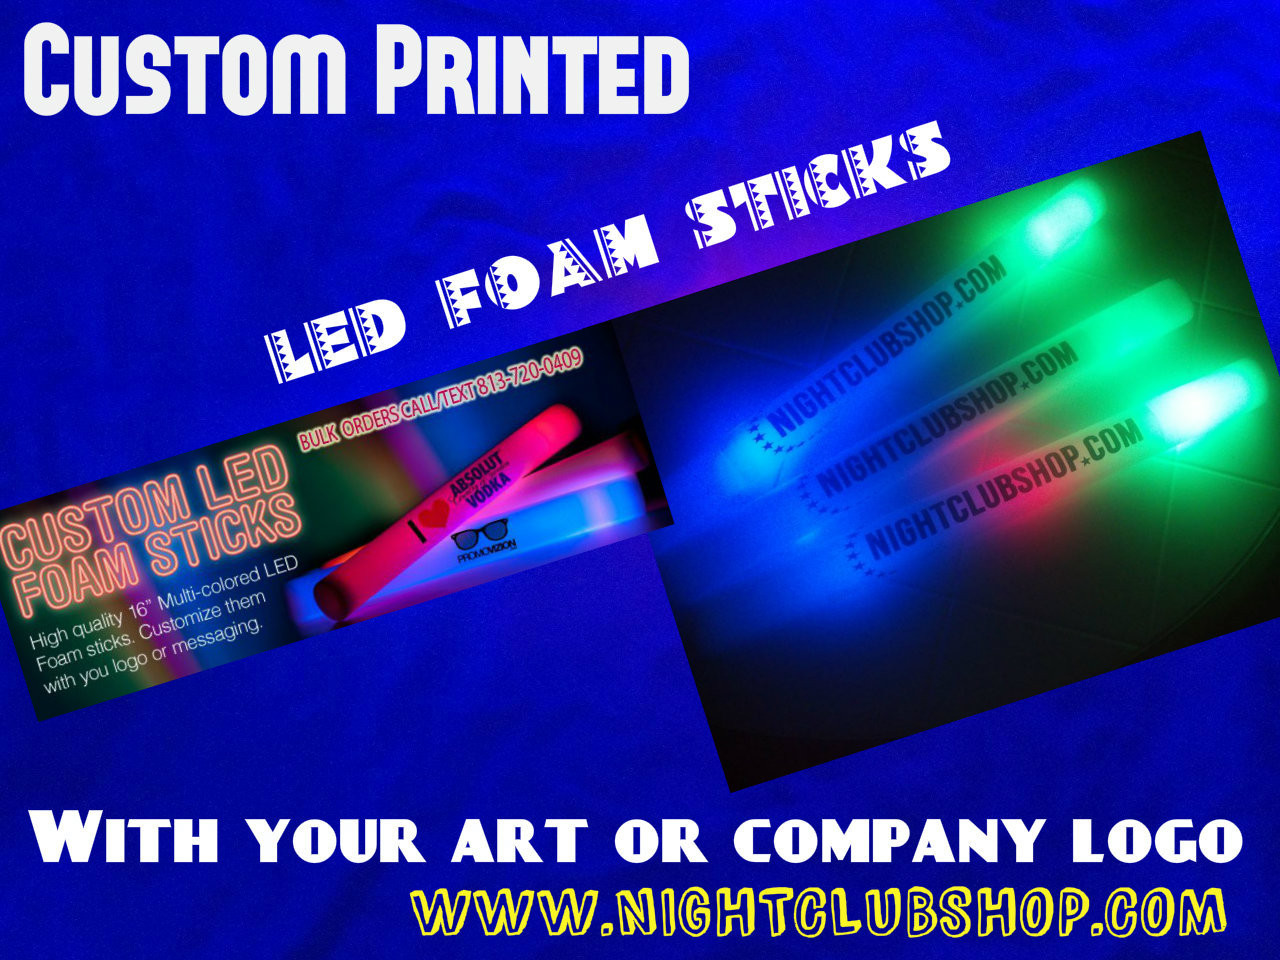 WEDDING HIGH QUALITY LED FOAM STICKS 16 INCH CUSTOM (3 PACKS)